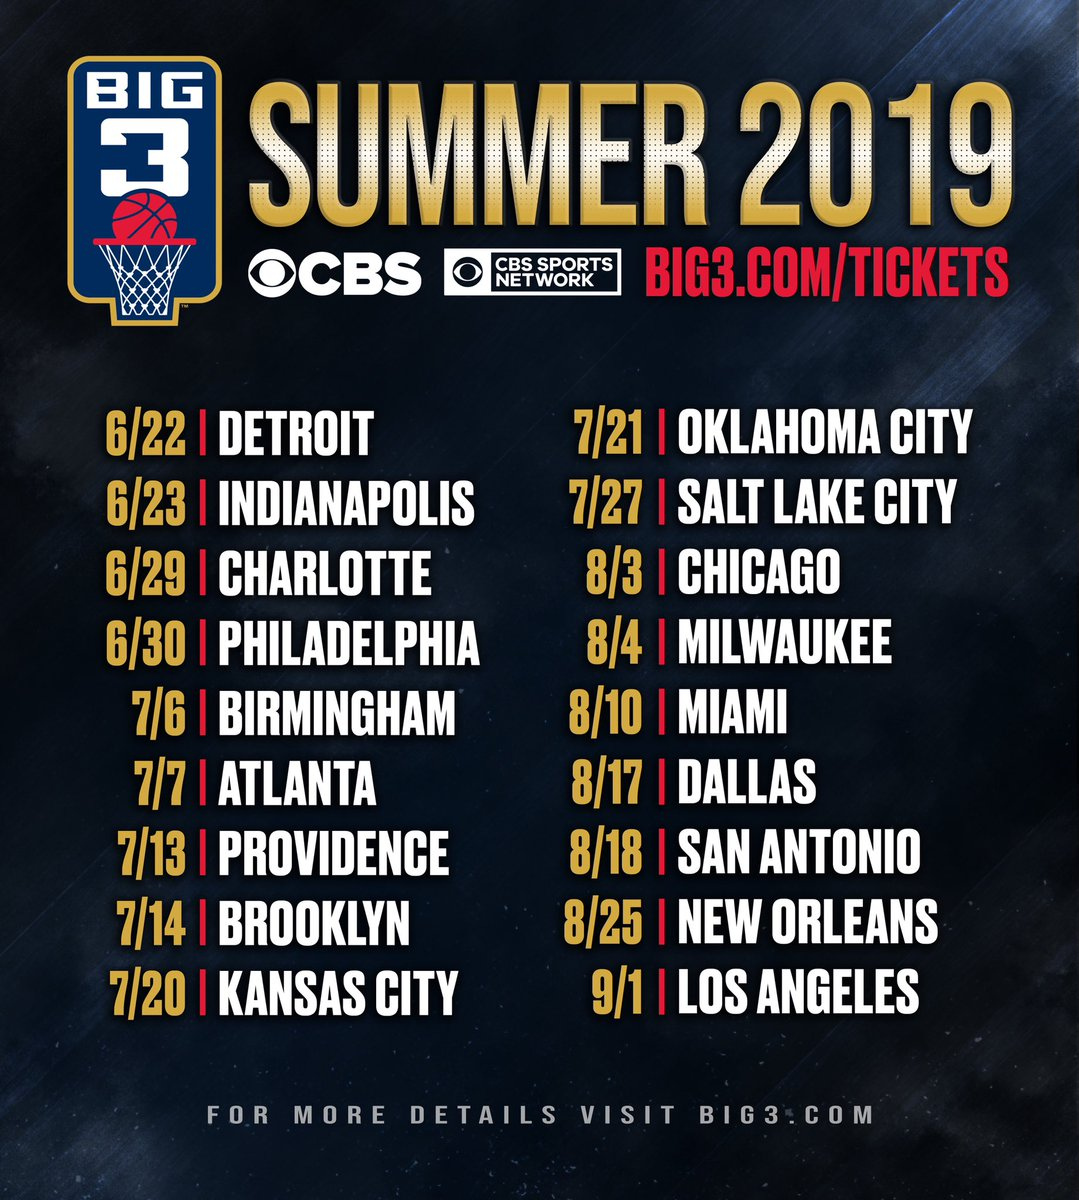 BIG3 - Tickets On Sale Now! on Twitter: